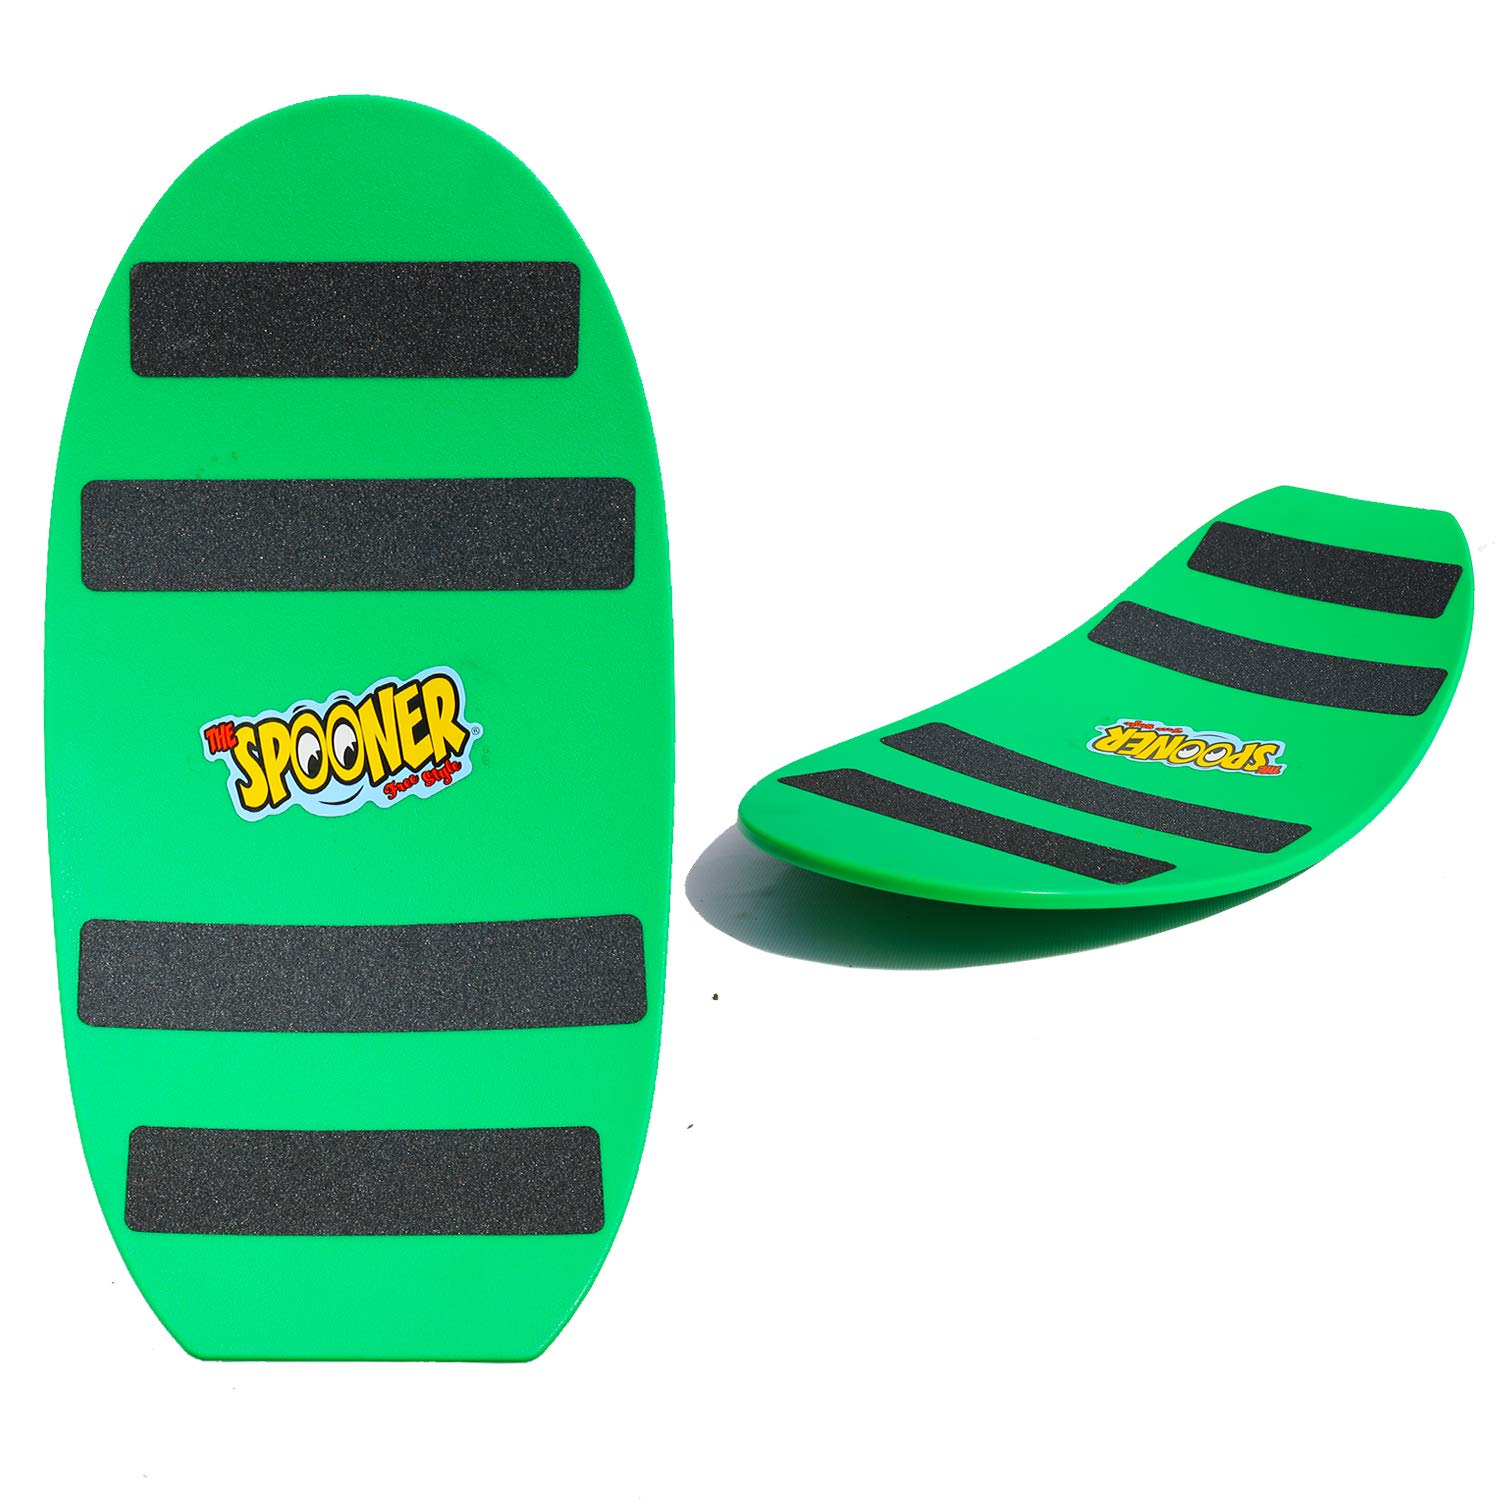 Spooner Boards 5512772 Freestyle Green